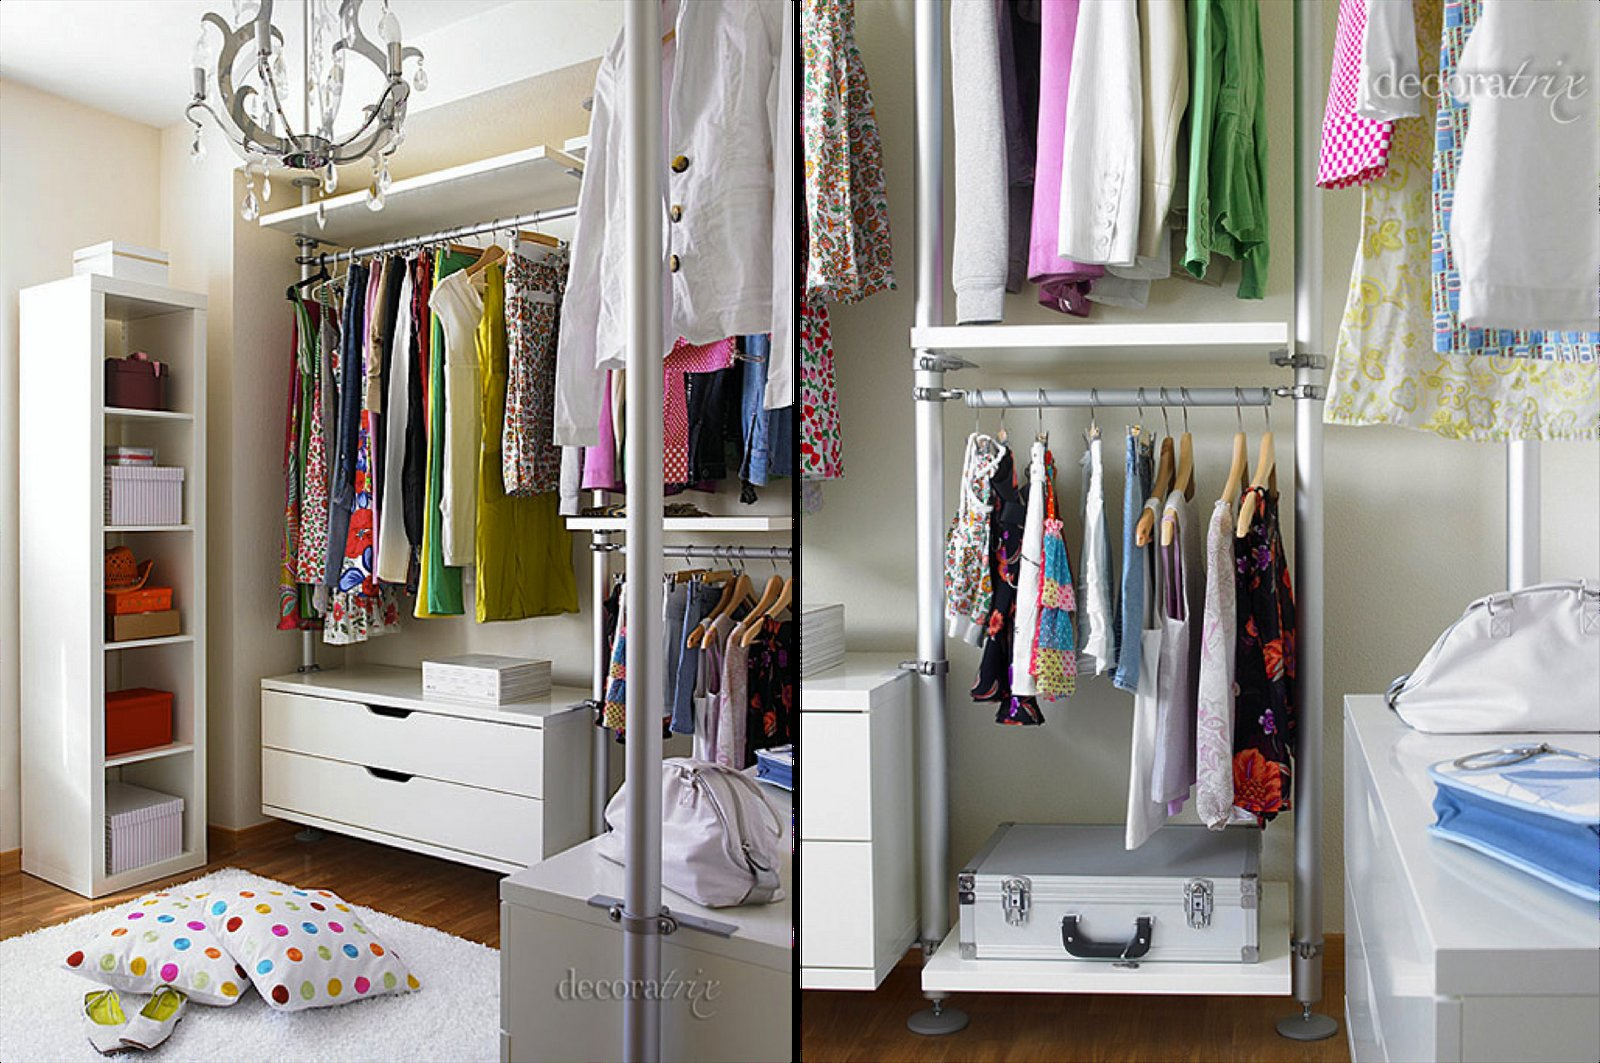 Best More Ikea Stolmen Ideas For The Spare Room Walk In Closet With Pictures